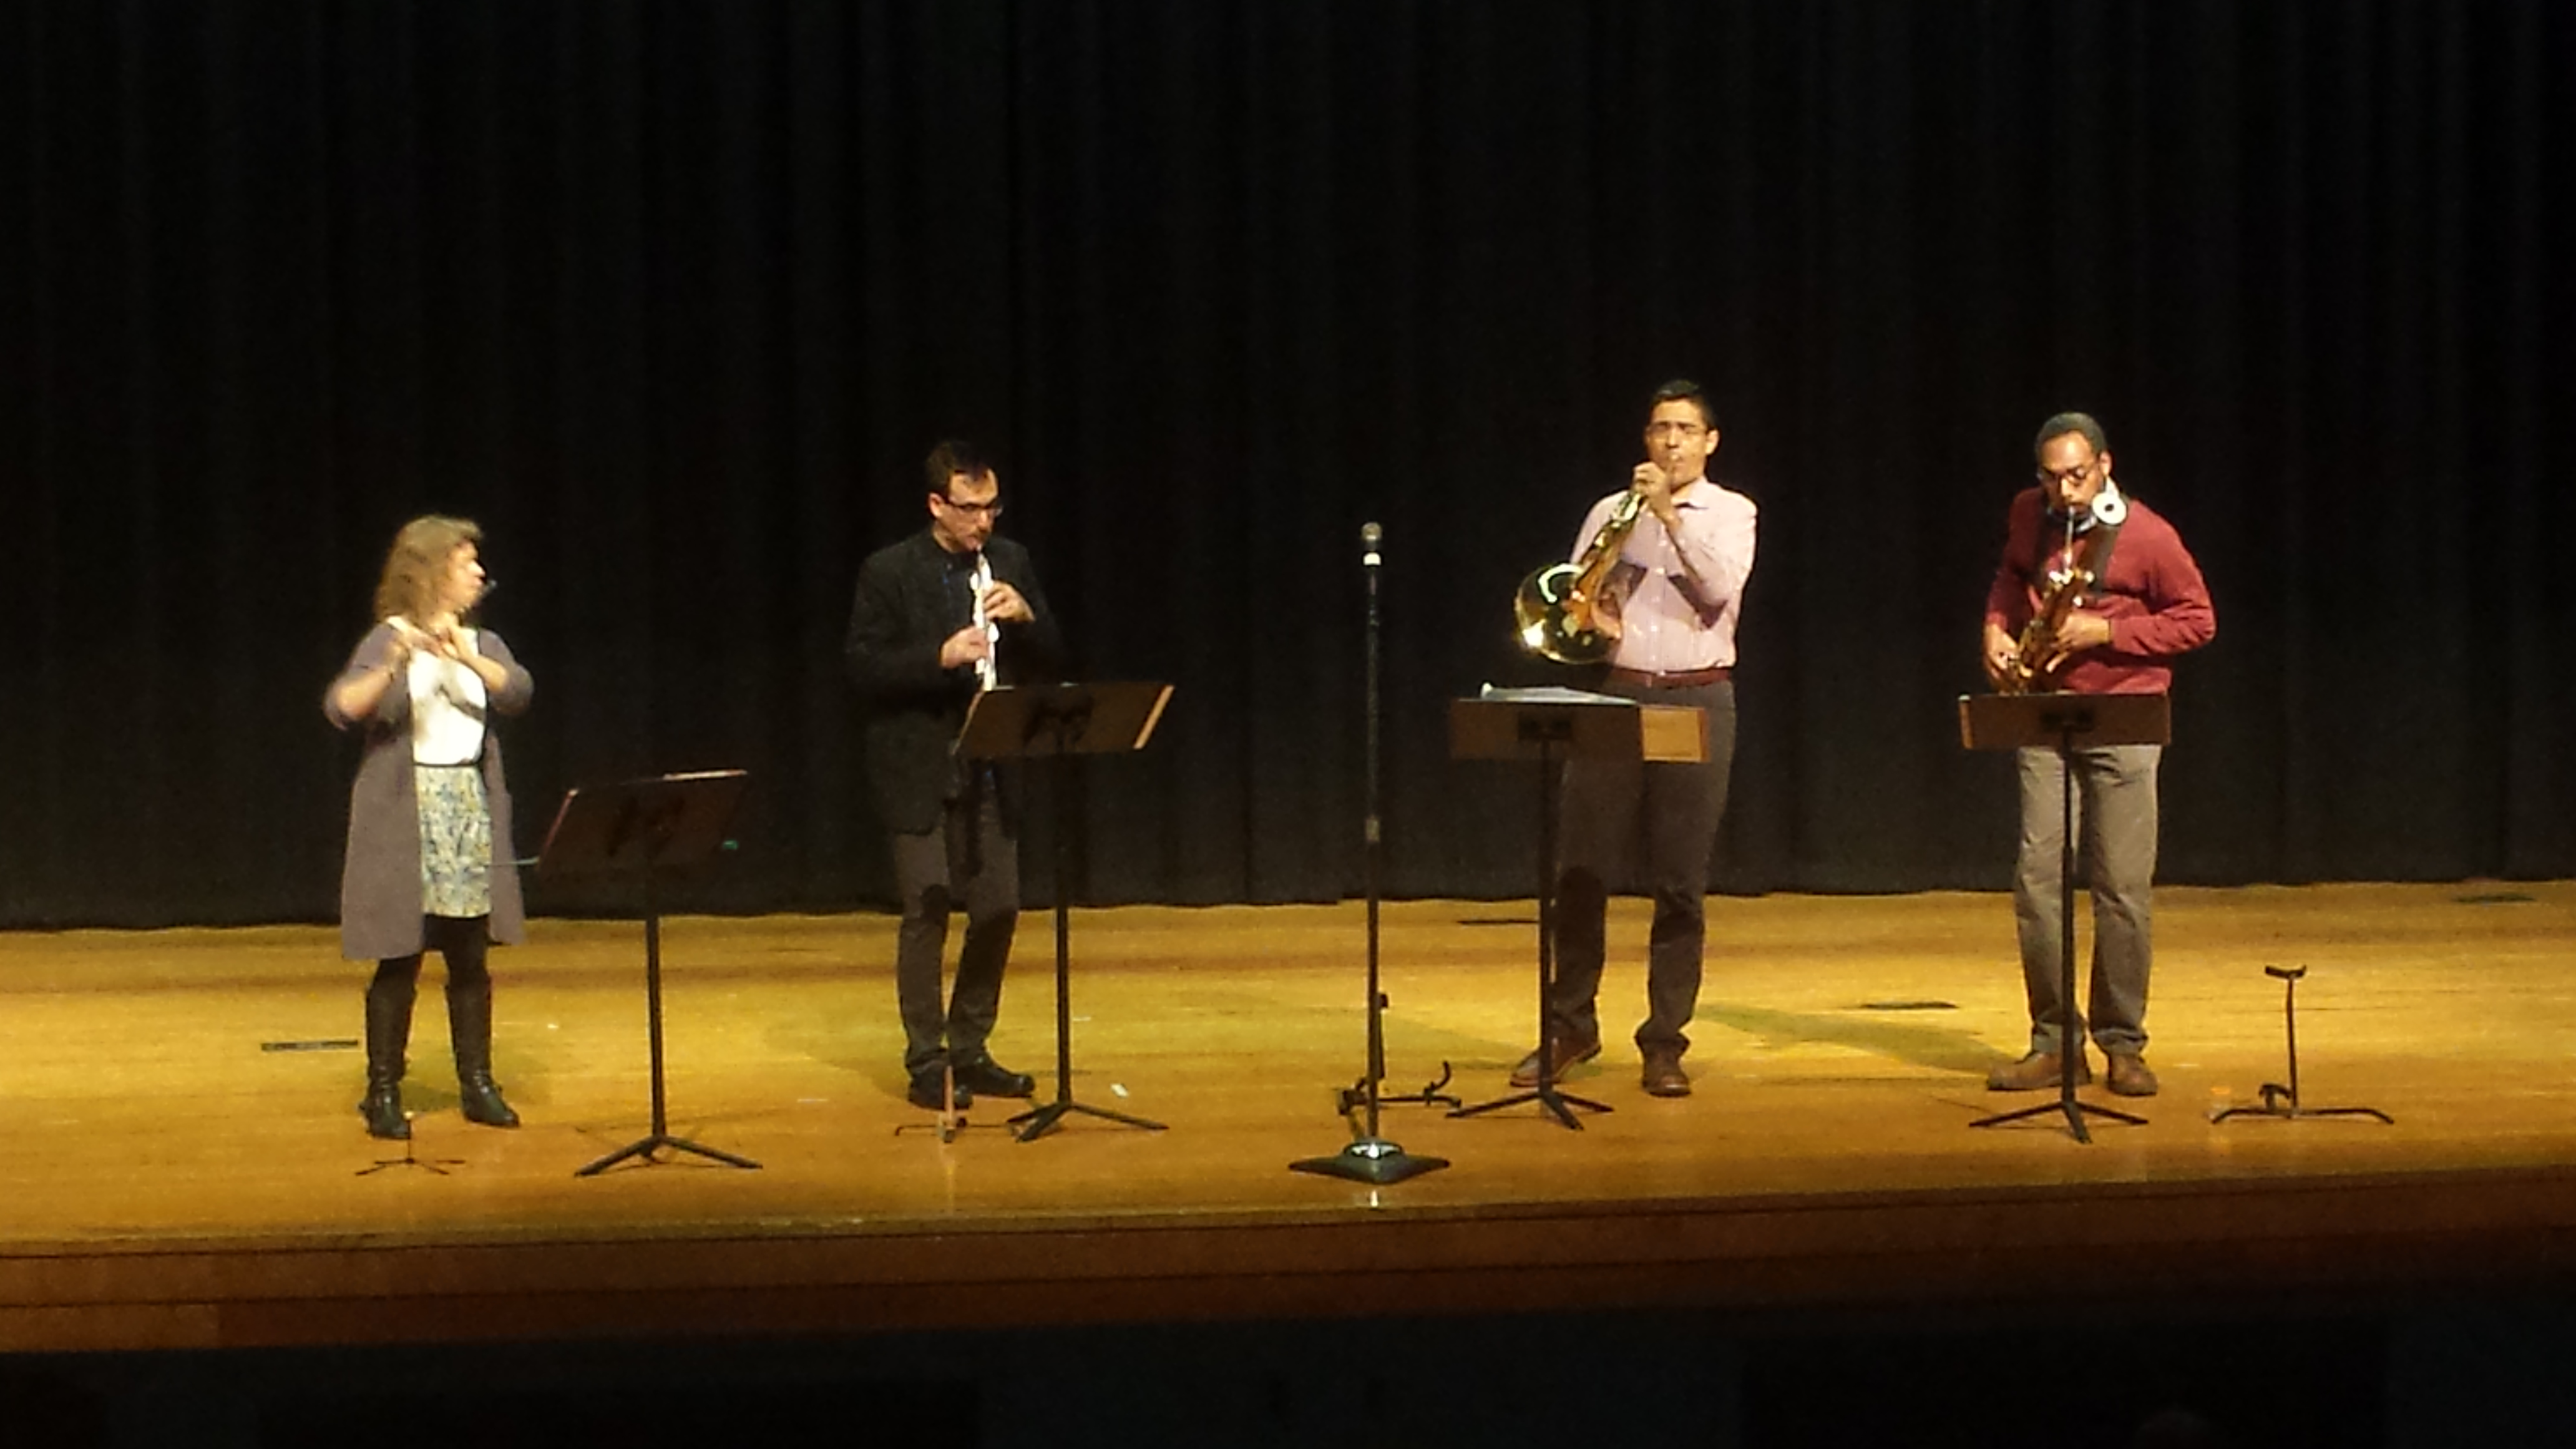 Quinteto Latino members perform for Plaza Middle School music and Spanish classes. Members include Diane Grubbe on flute, Kyle Bruckmann on the oboe, Armando Castellano on French horn, and bassoon player Shawn Jones.